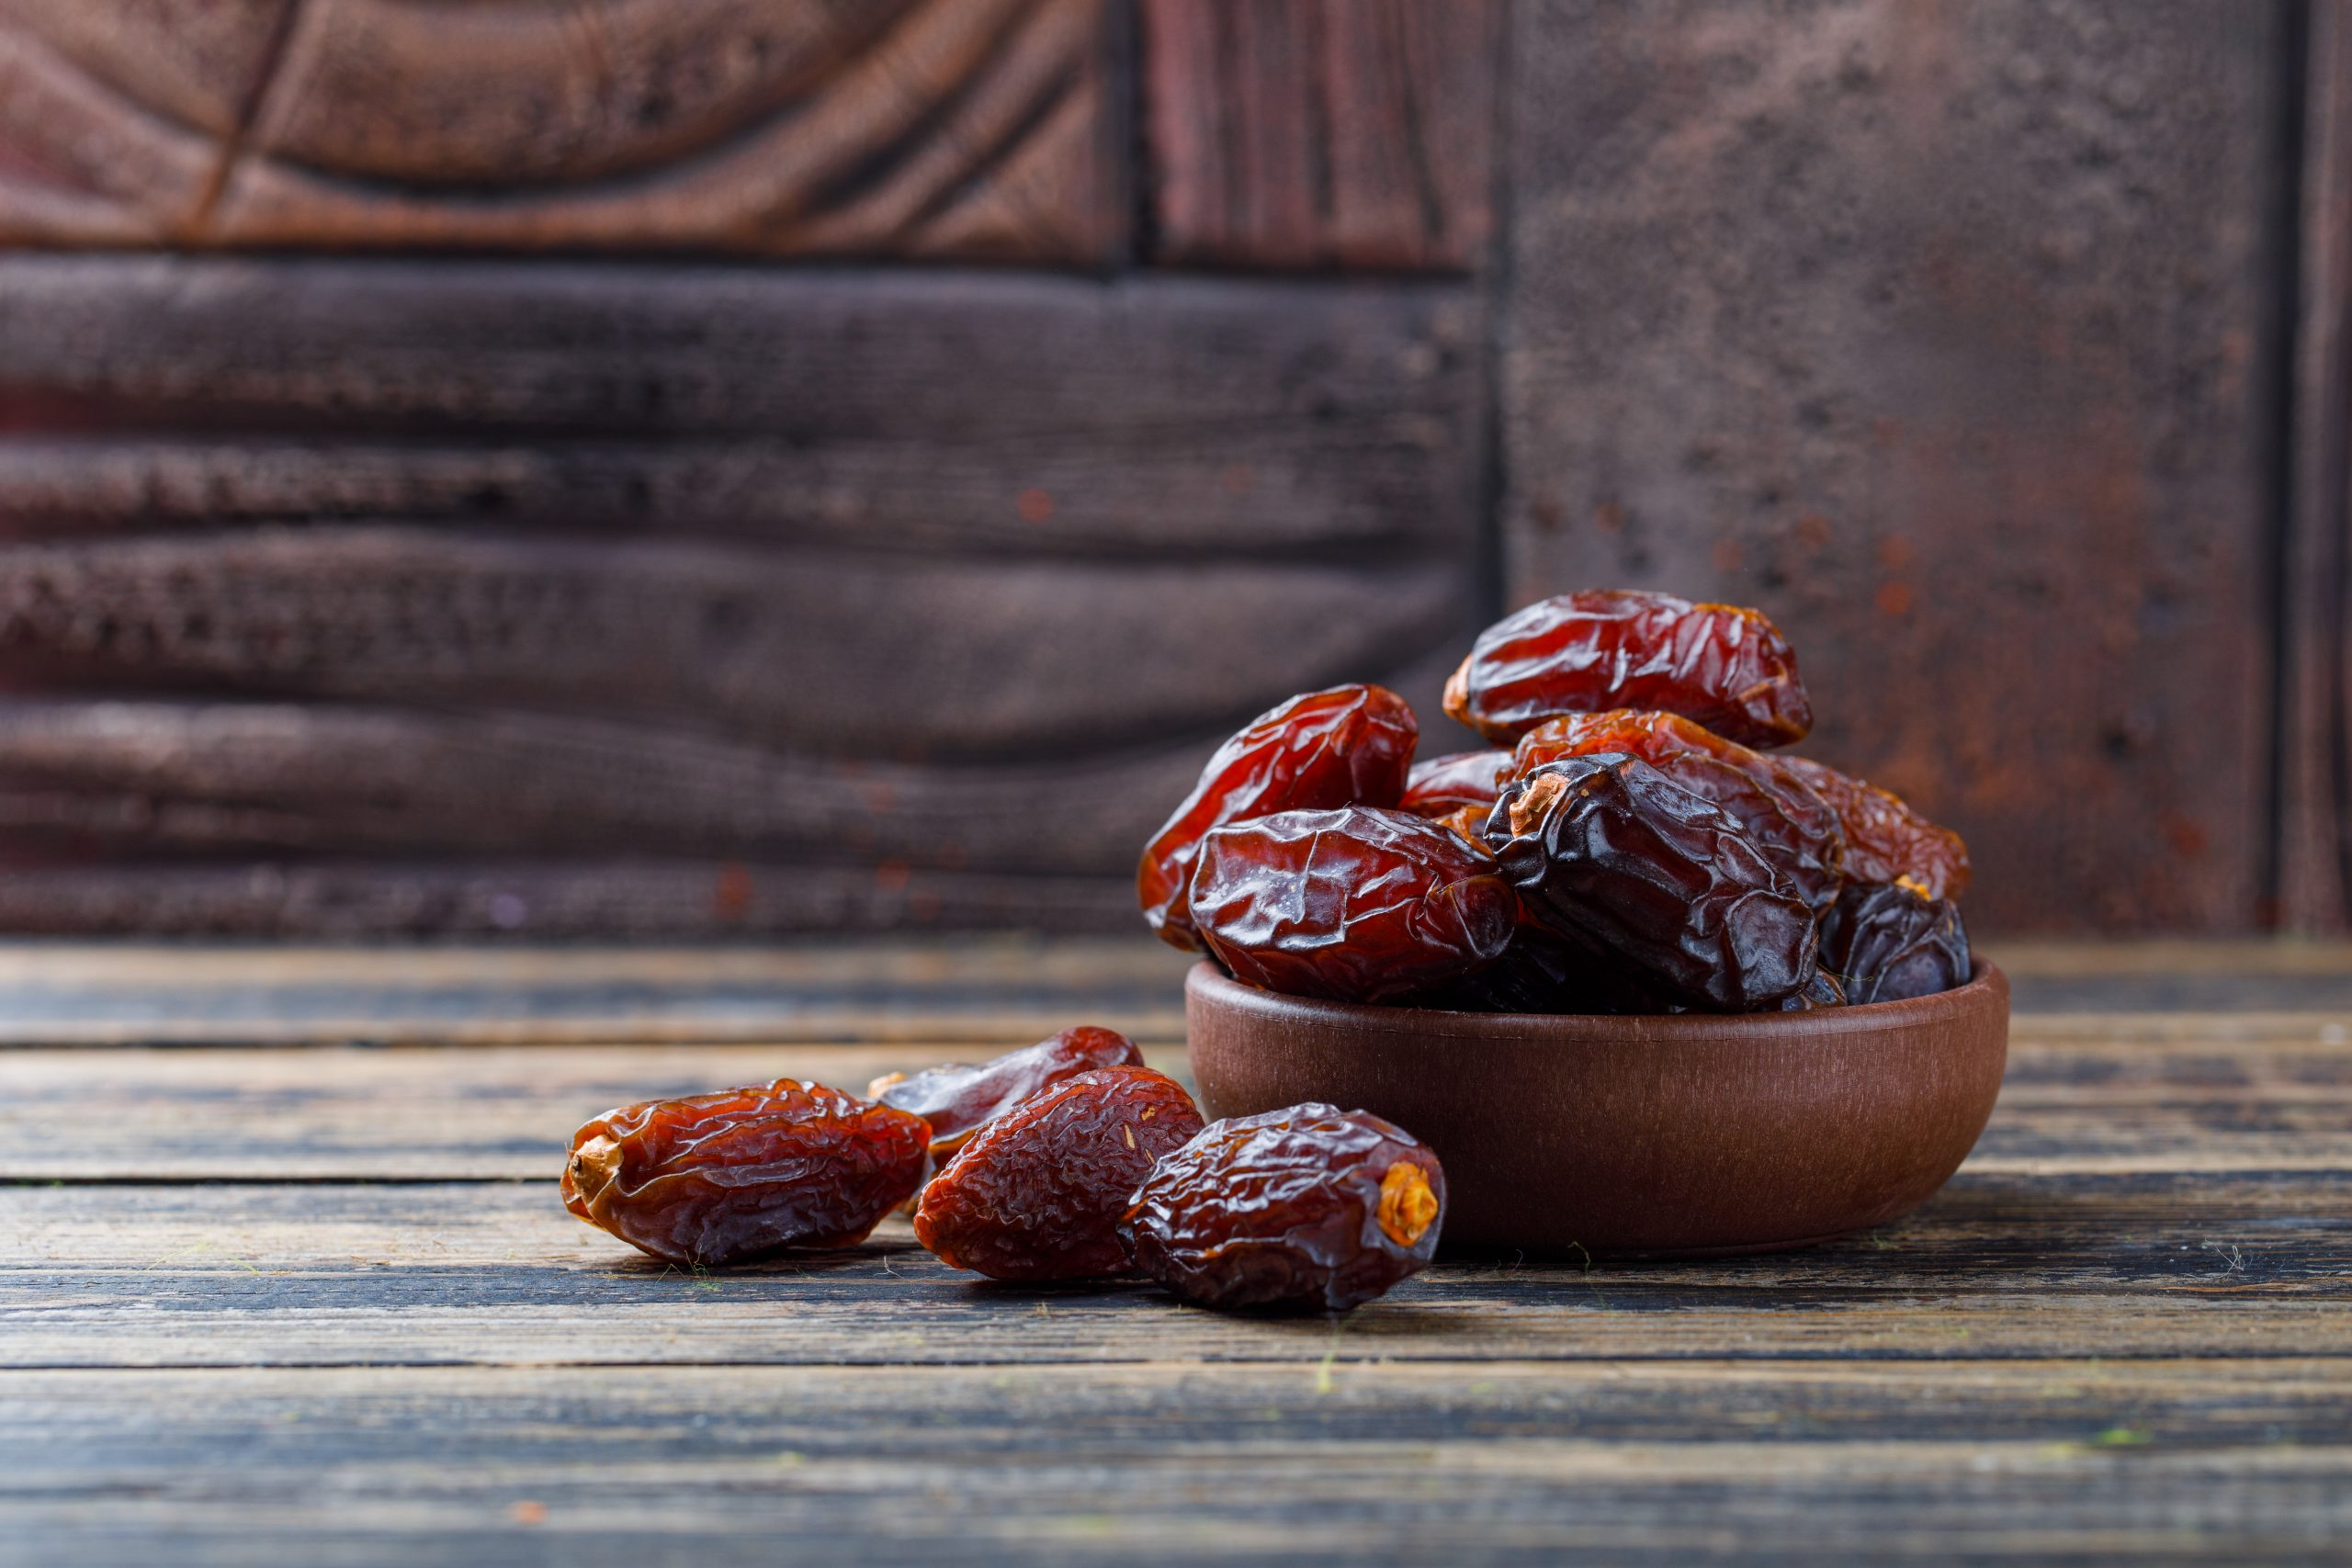 Sweet dates in a clay plate on stone tile and wooden background, side view.